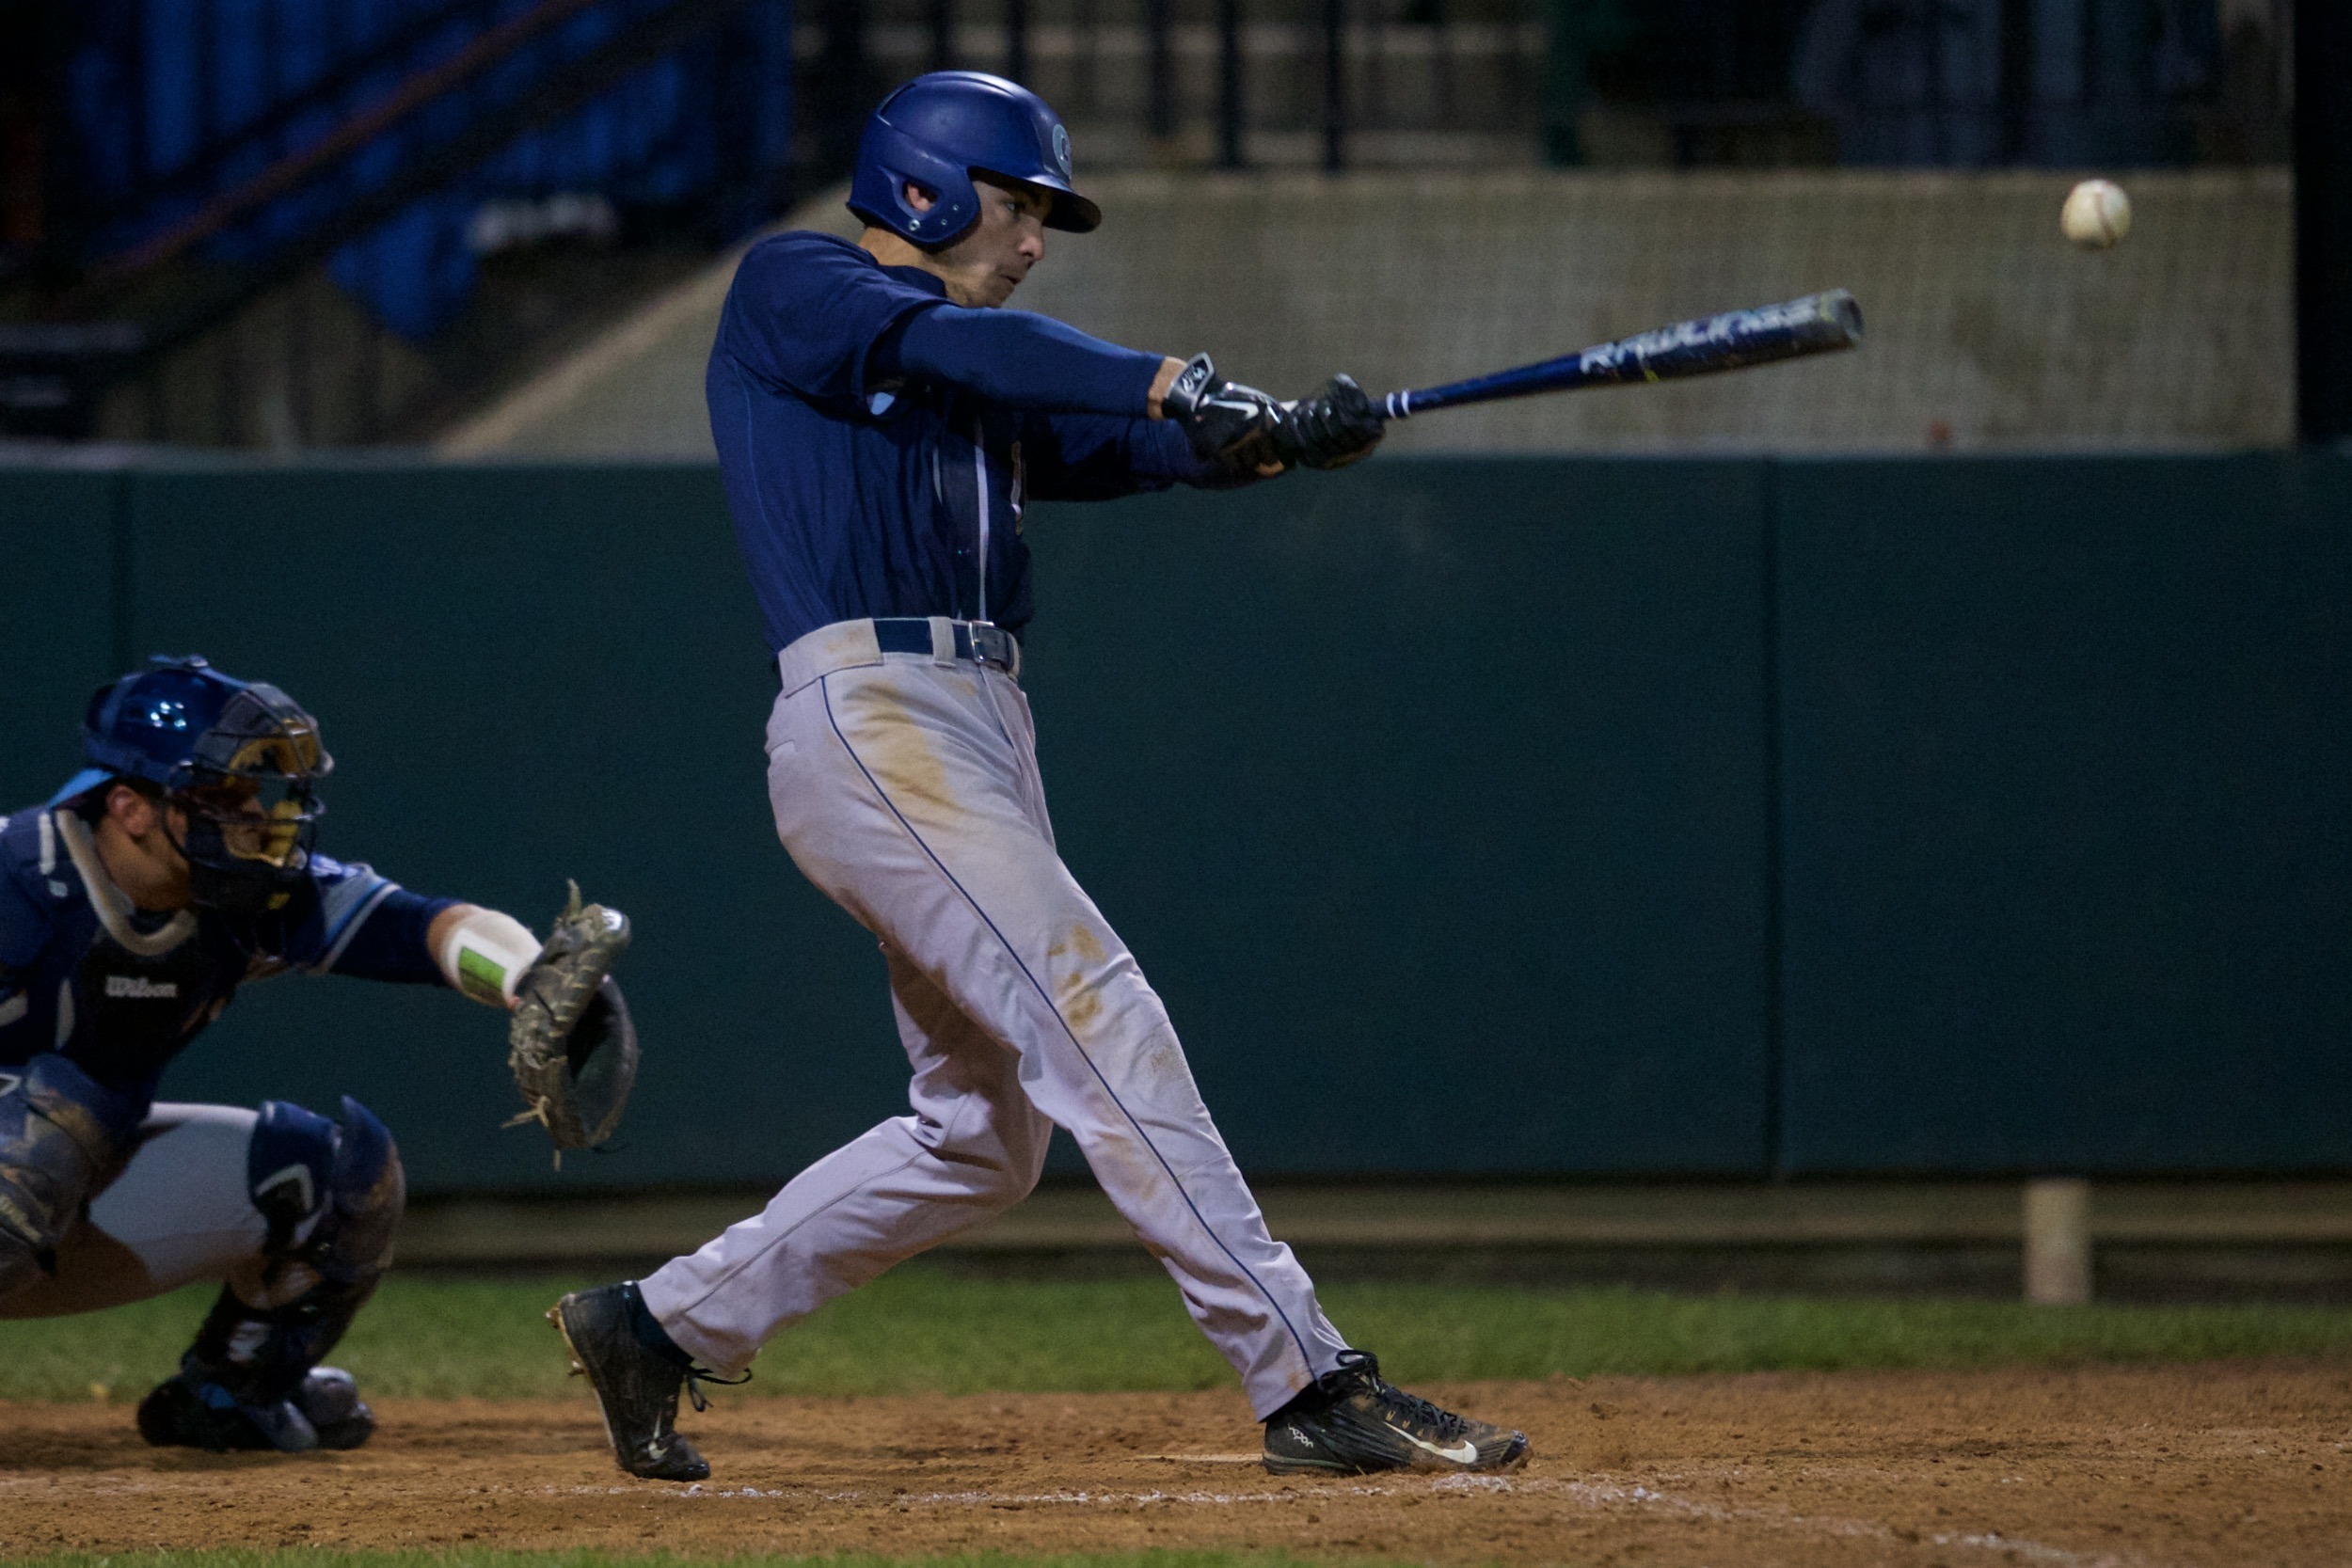 Michael DeRenzi was on base all five times, stole two bases and scored two runs.